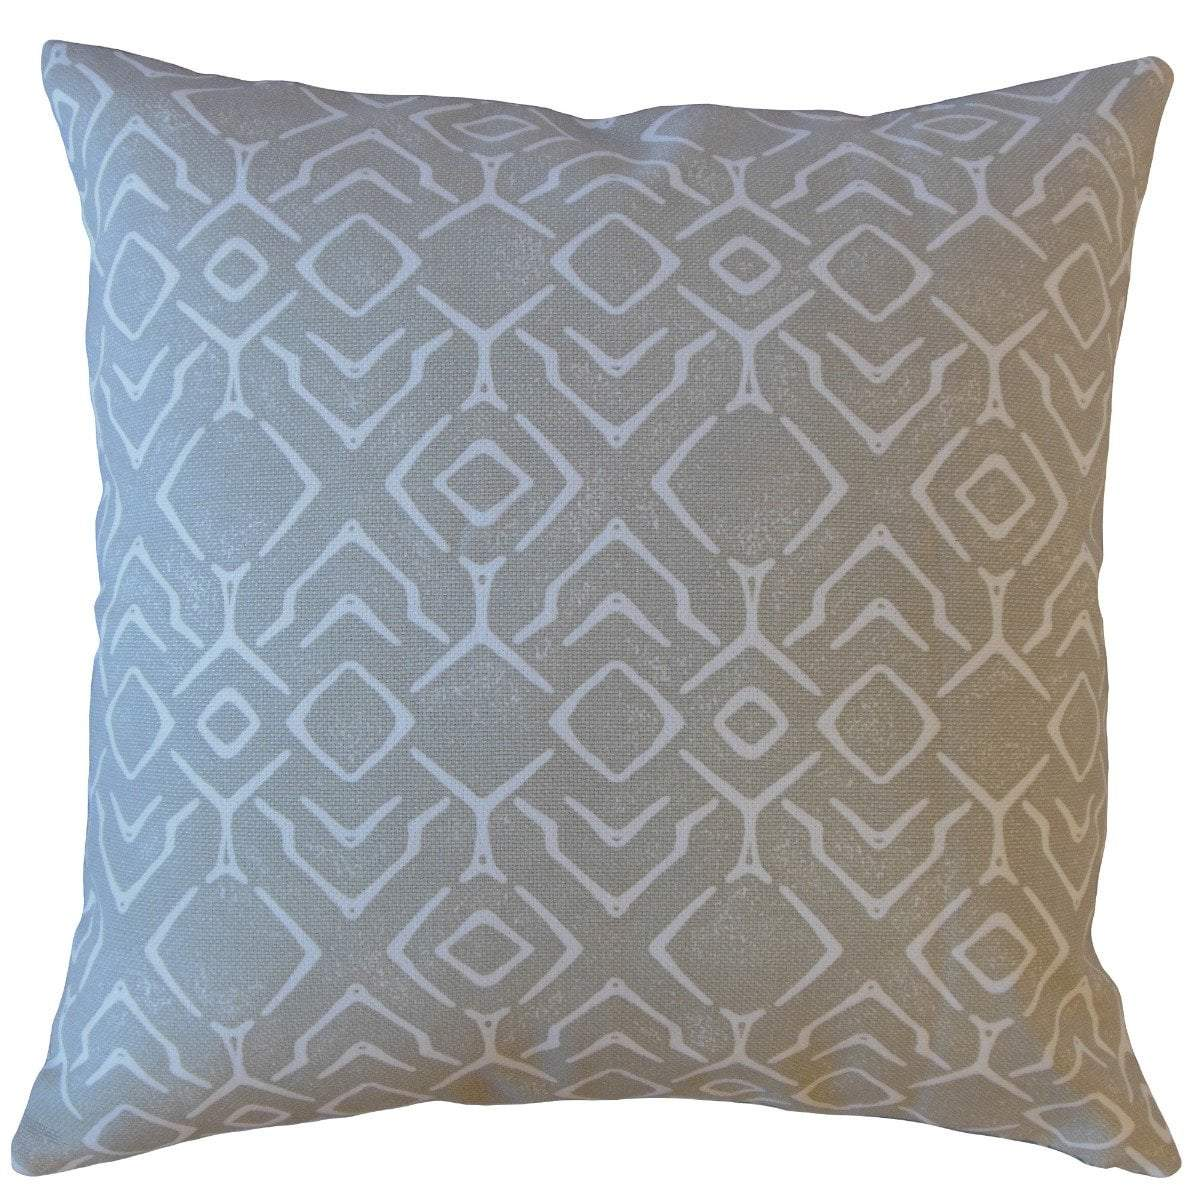 Bartlett Throw Pillow Cover